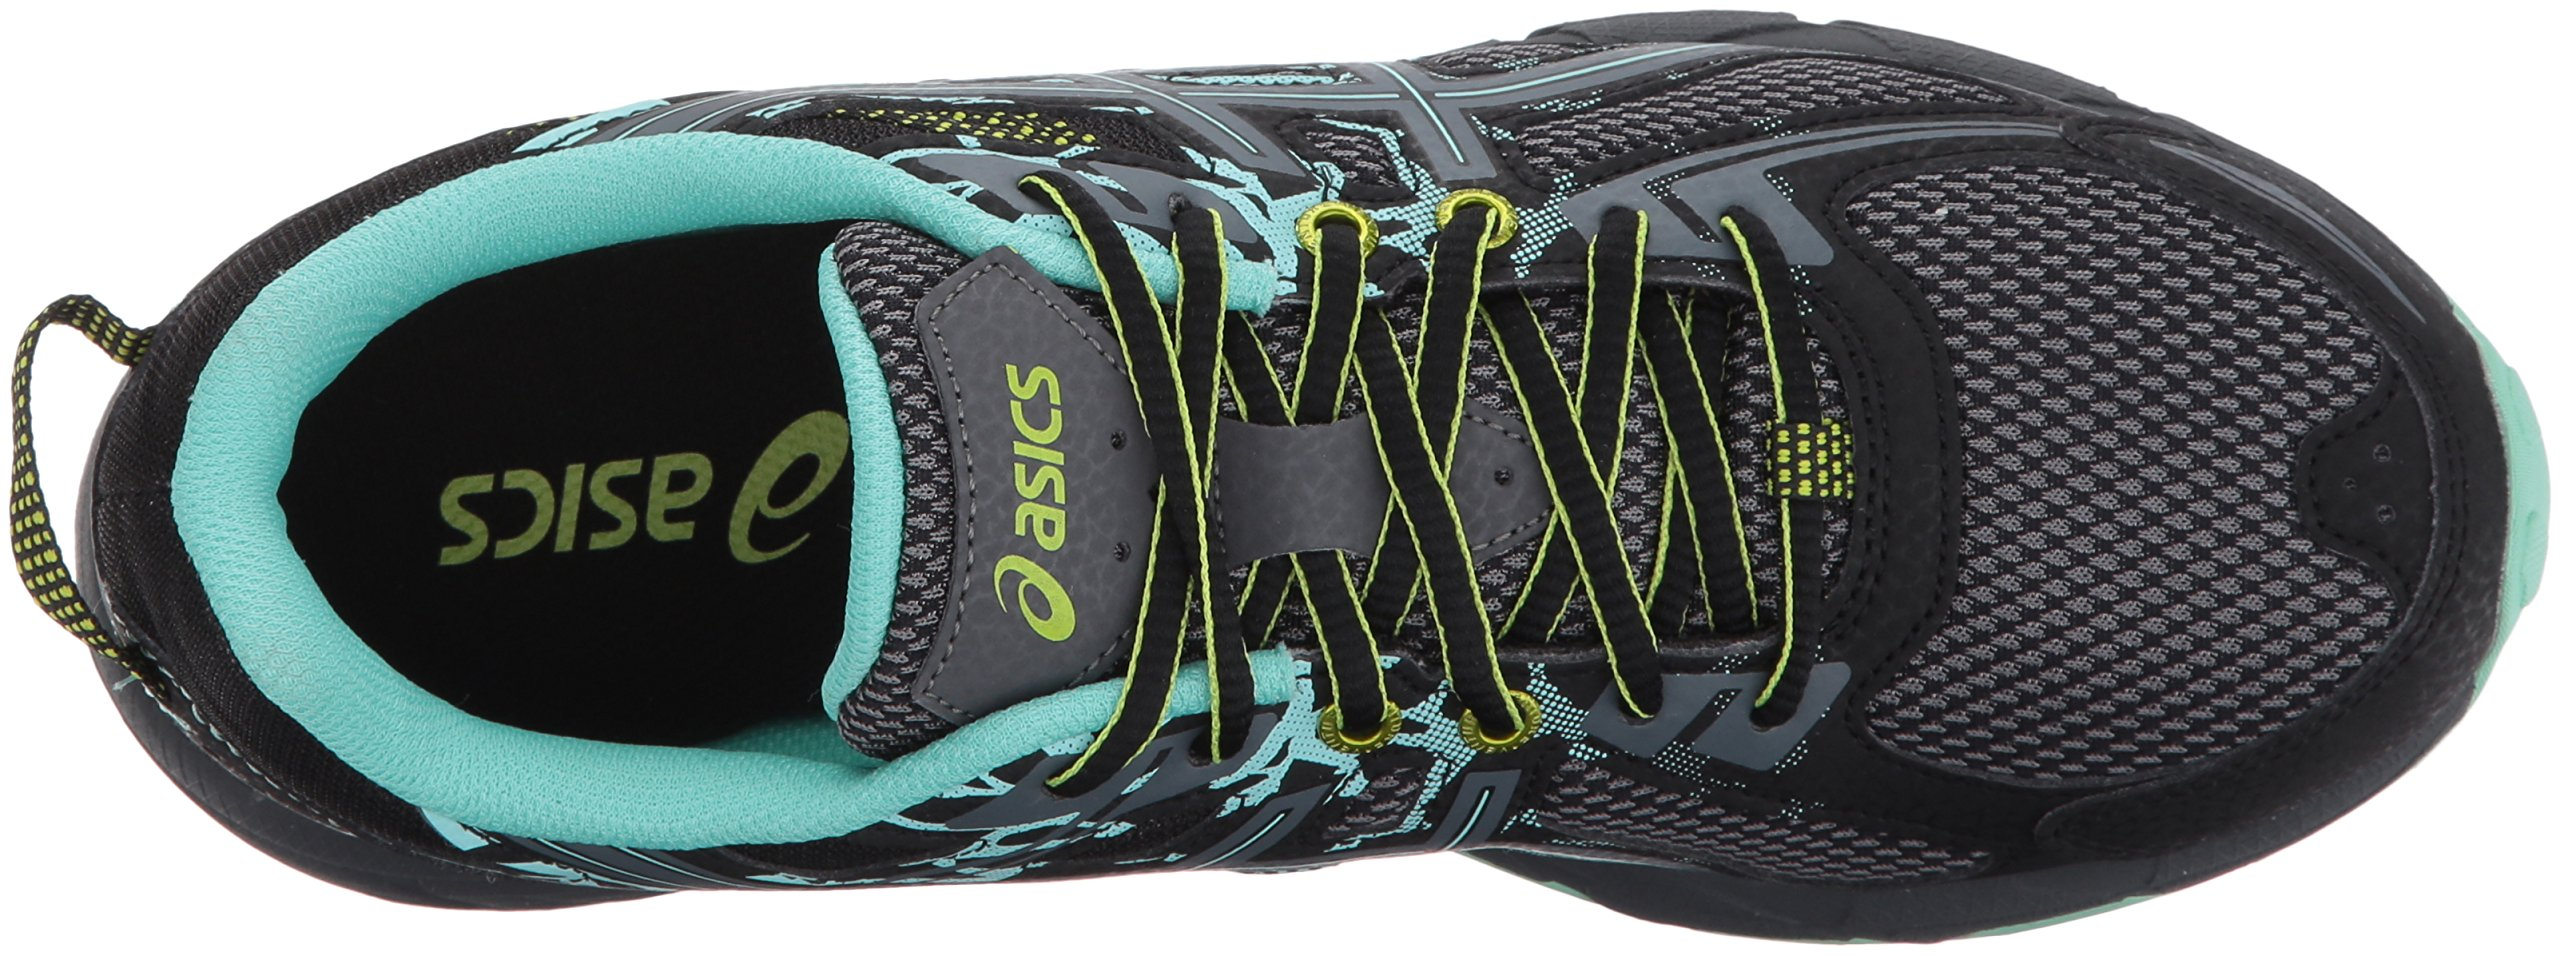 ASICS Women's Gel-Venture 6 Running-Shoes,Black/Carbon/Neon Lime,5 Medium US by ASICS (Image #8)